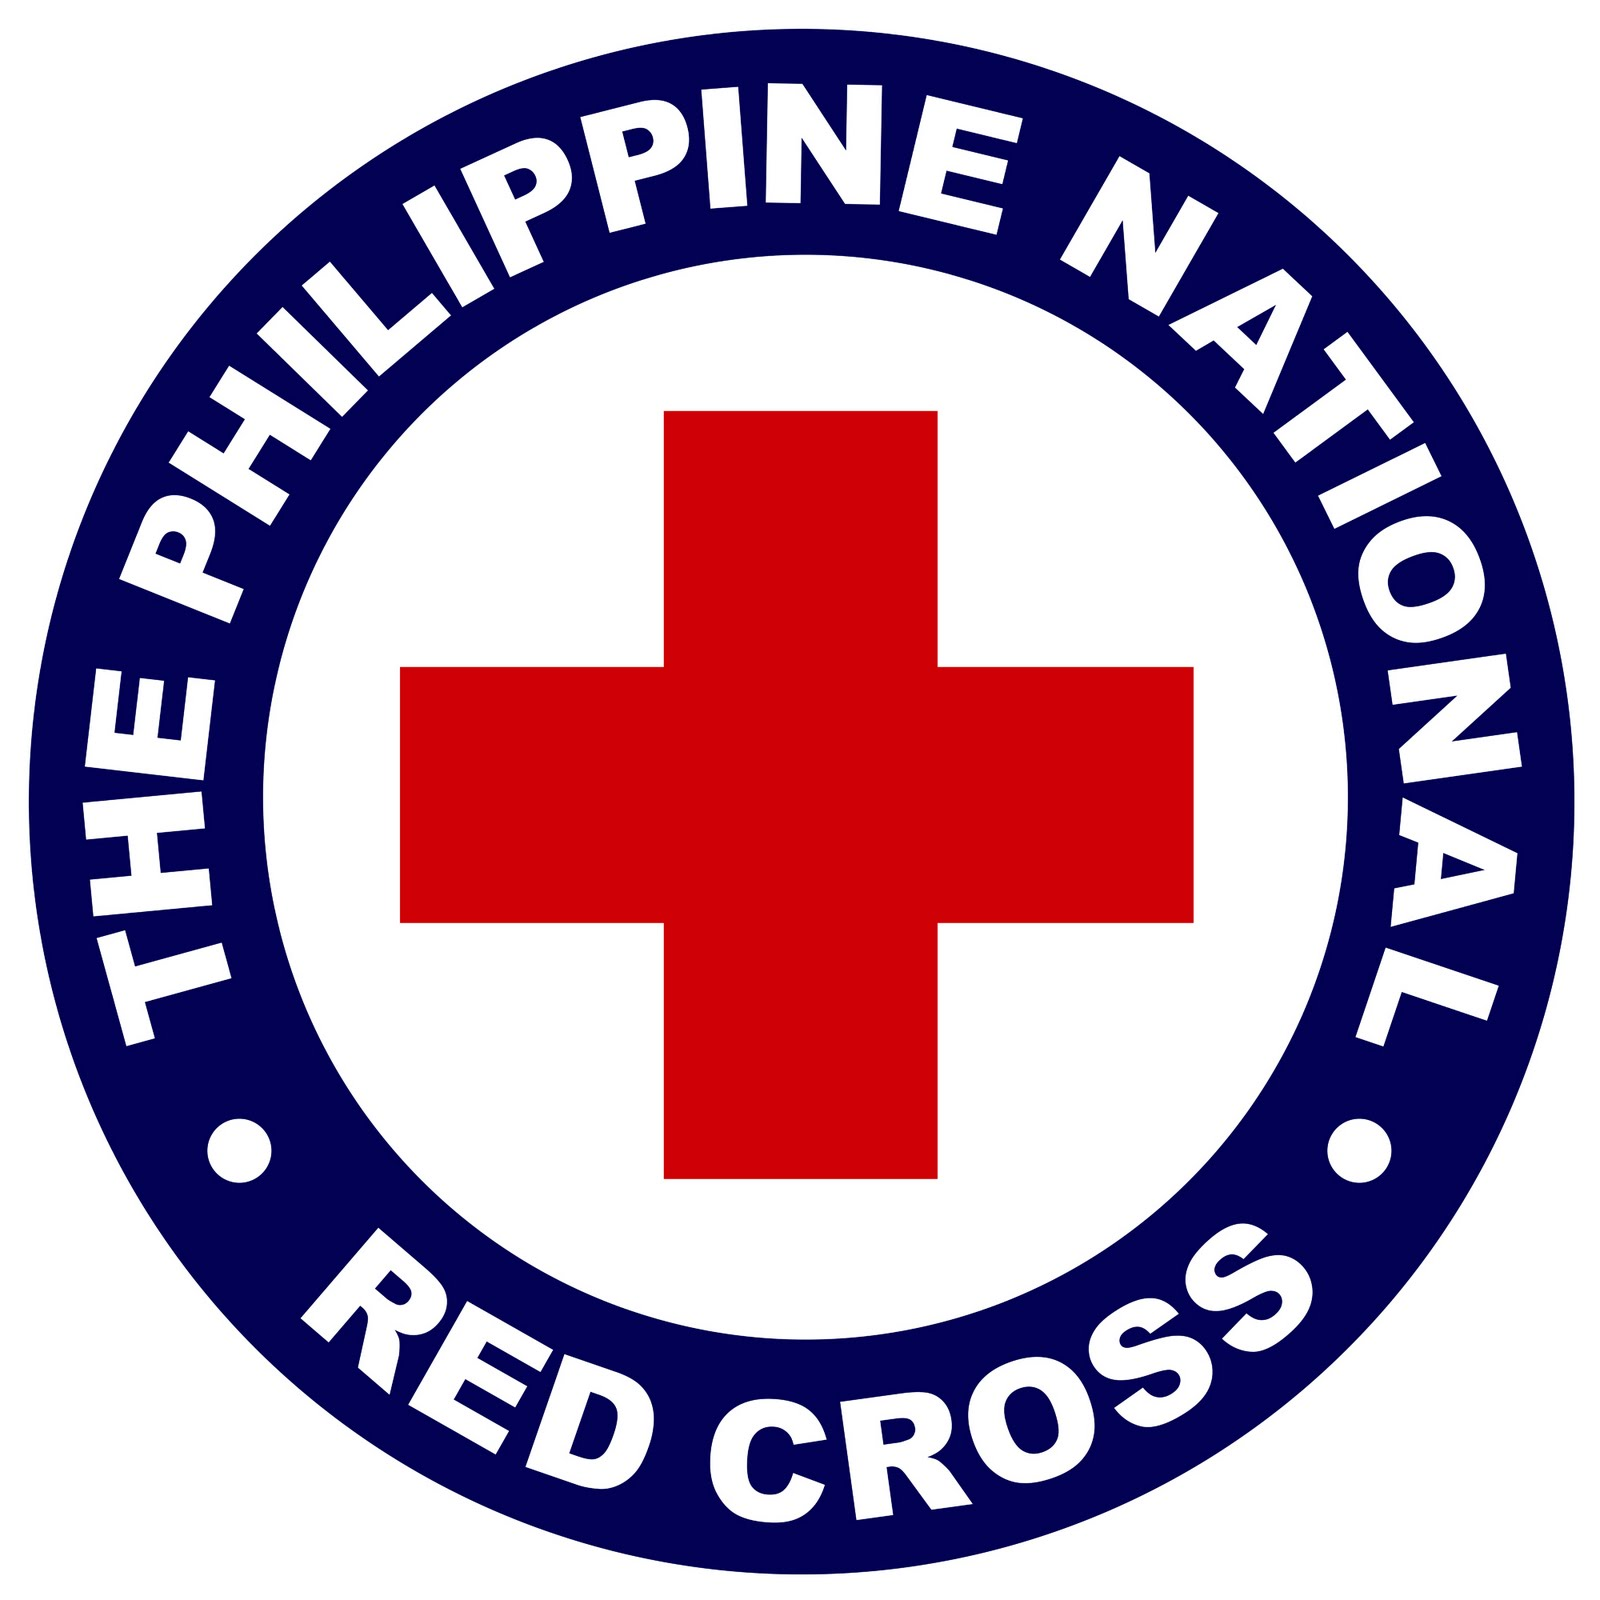 Red Cross clipart logo (obsolete) Red File:Philippine jpg National